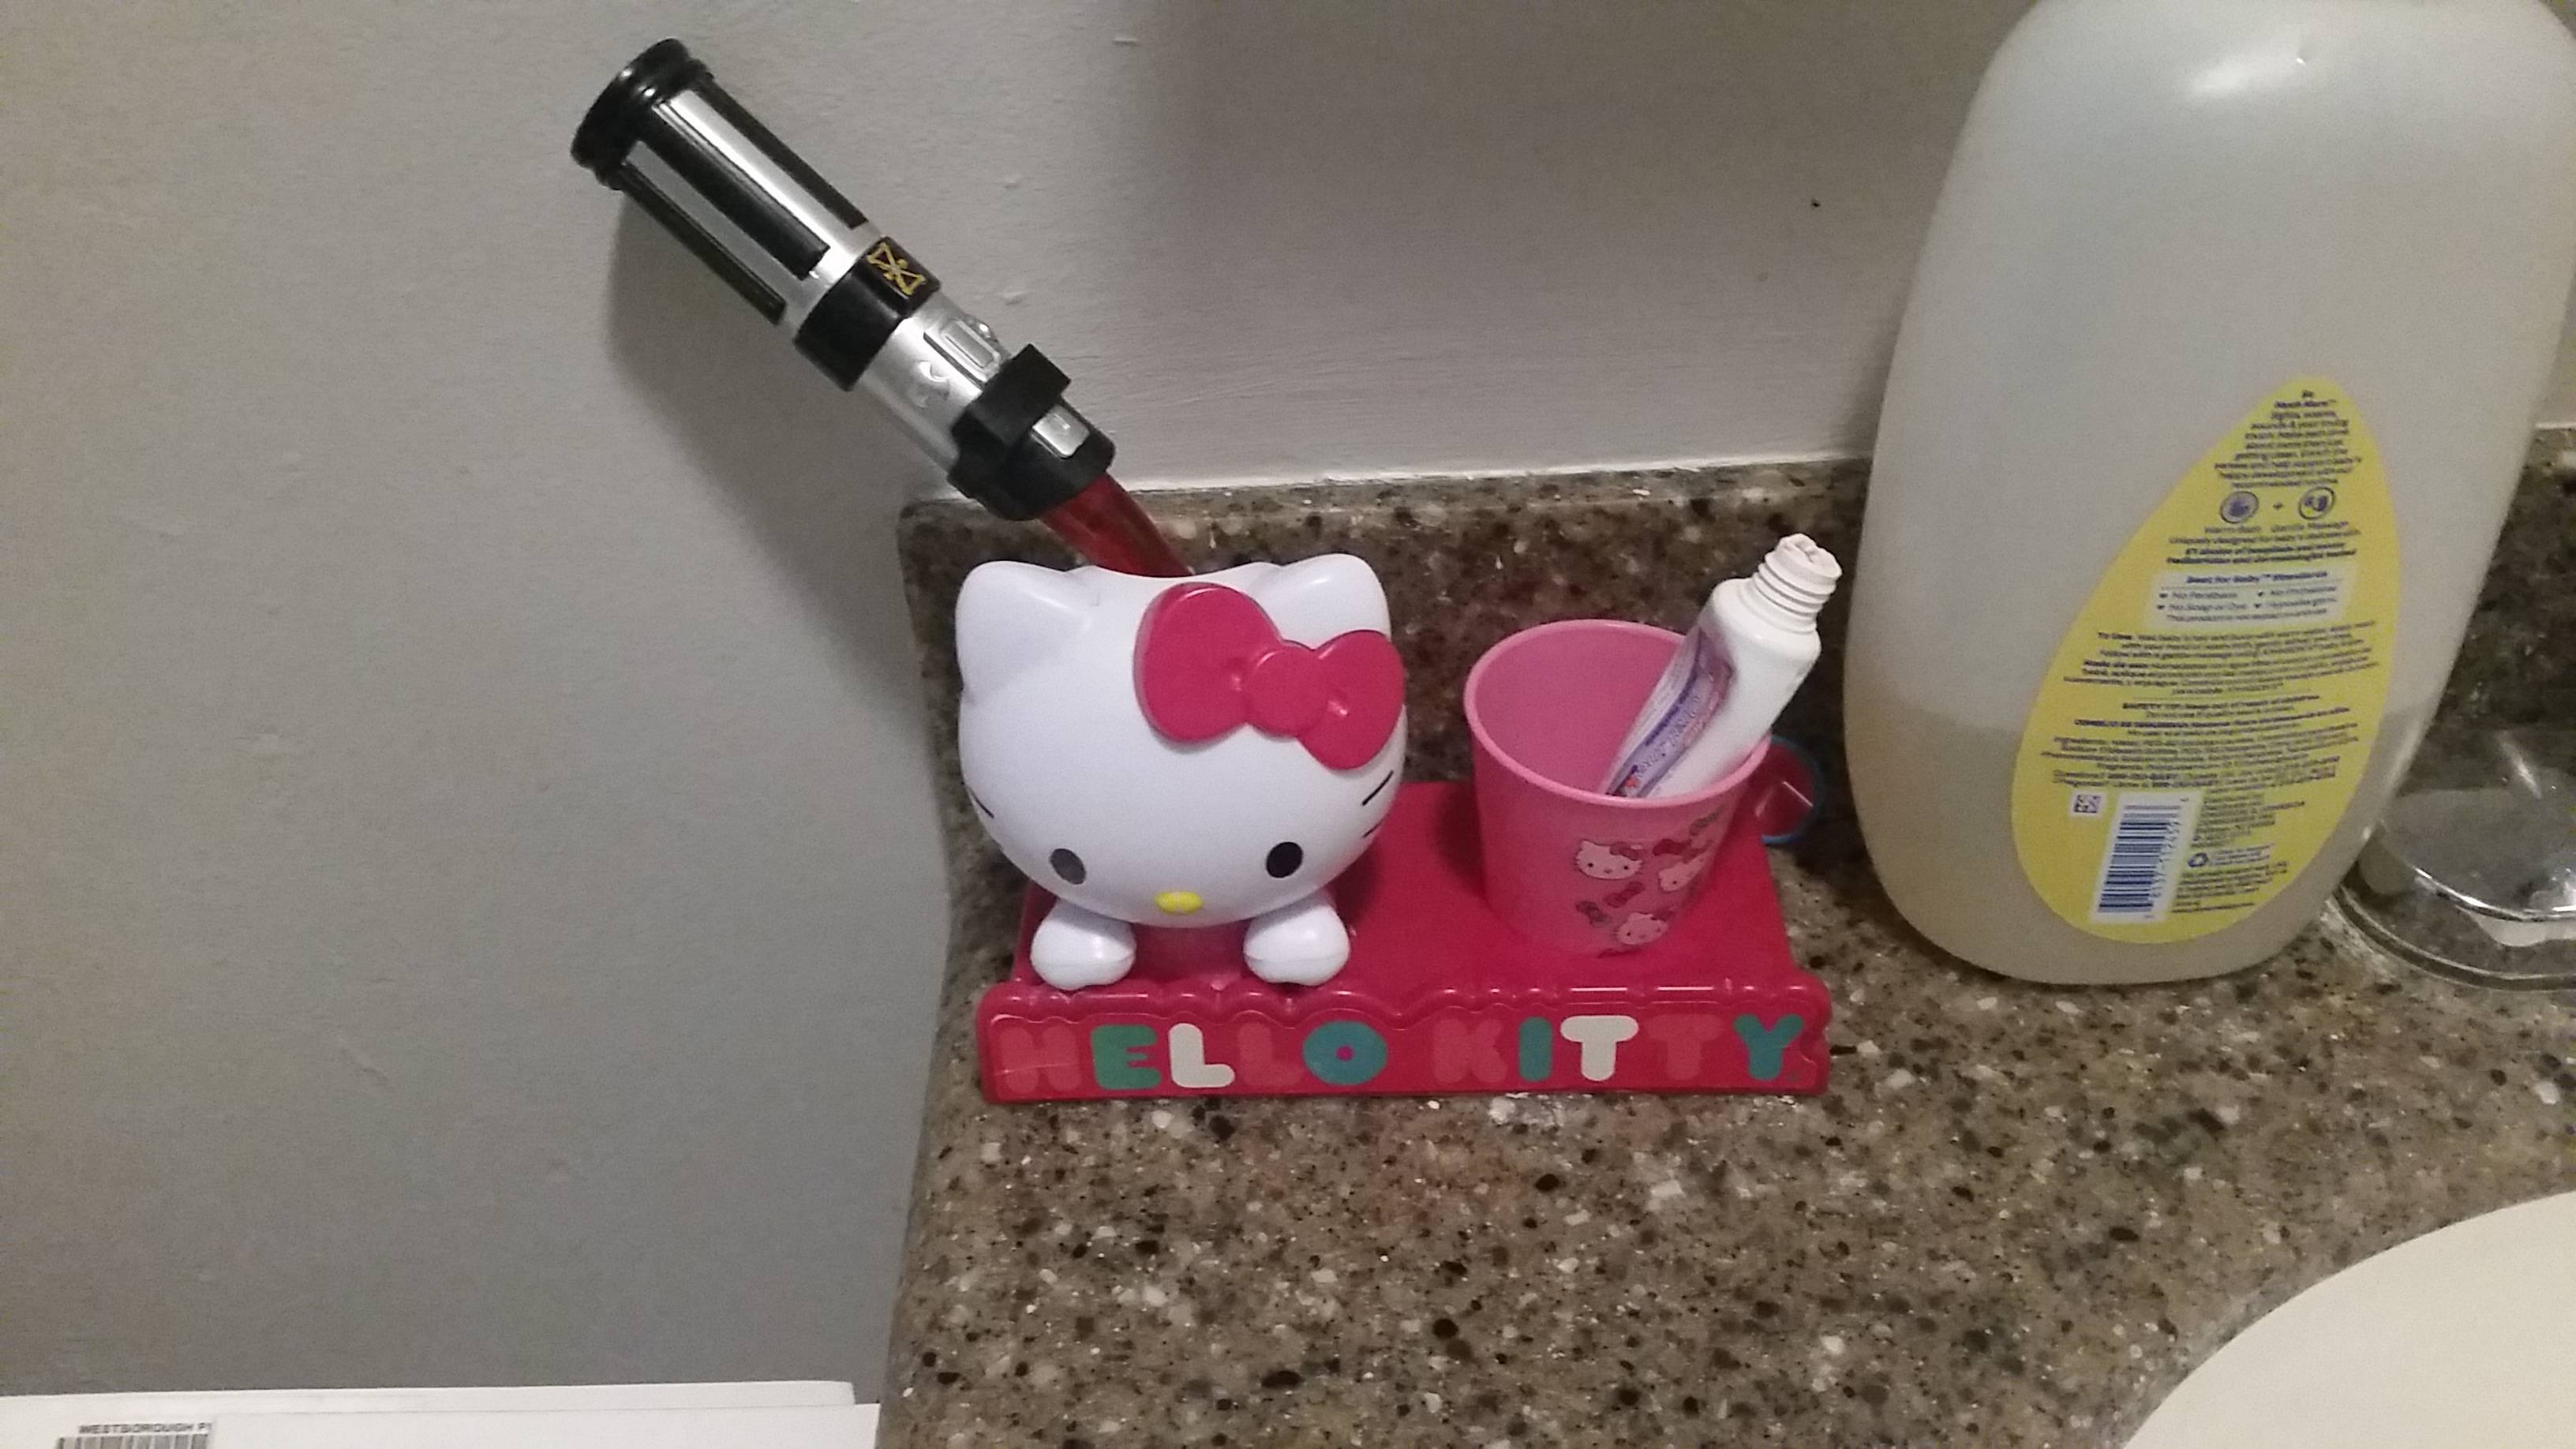 My daughter\'s tooth brush and toothbrush stand makes it look like Hello Kitty lost a duel with Darth Vader